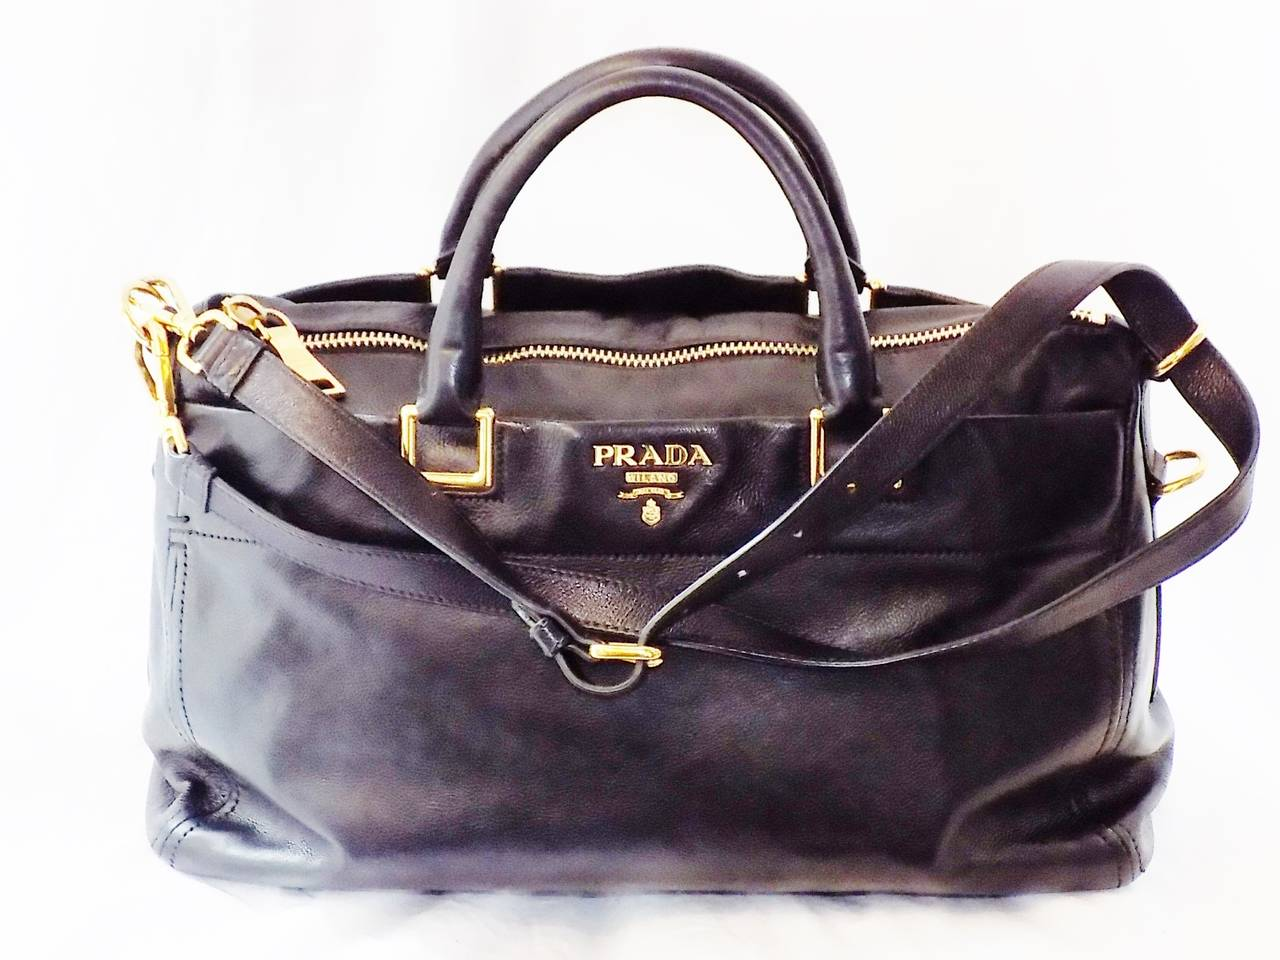 PRADA Executive Black soft leather Tote Bag at 1stdibs